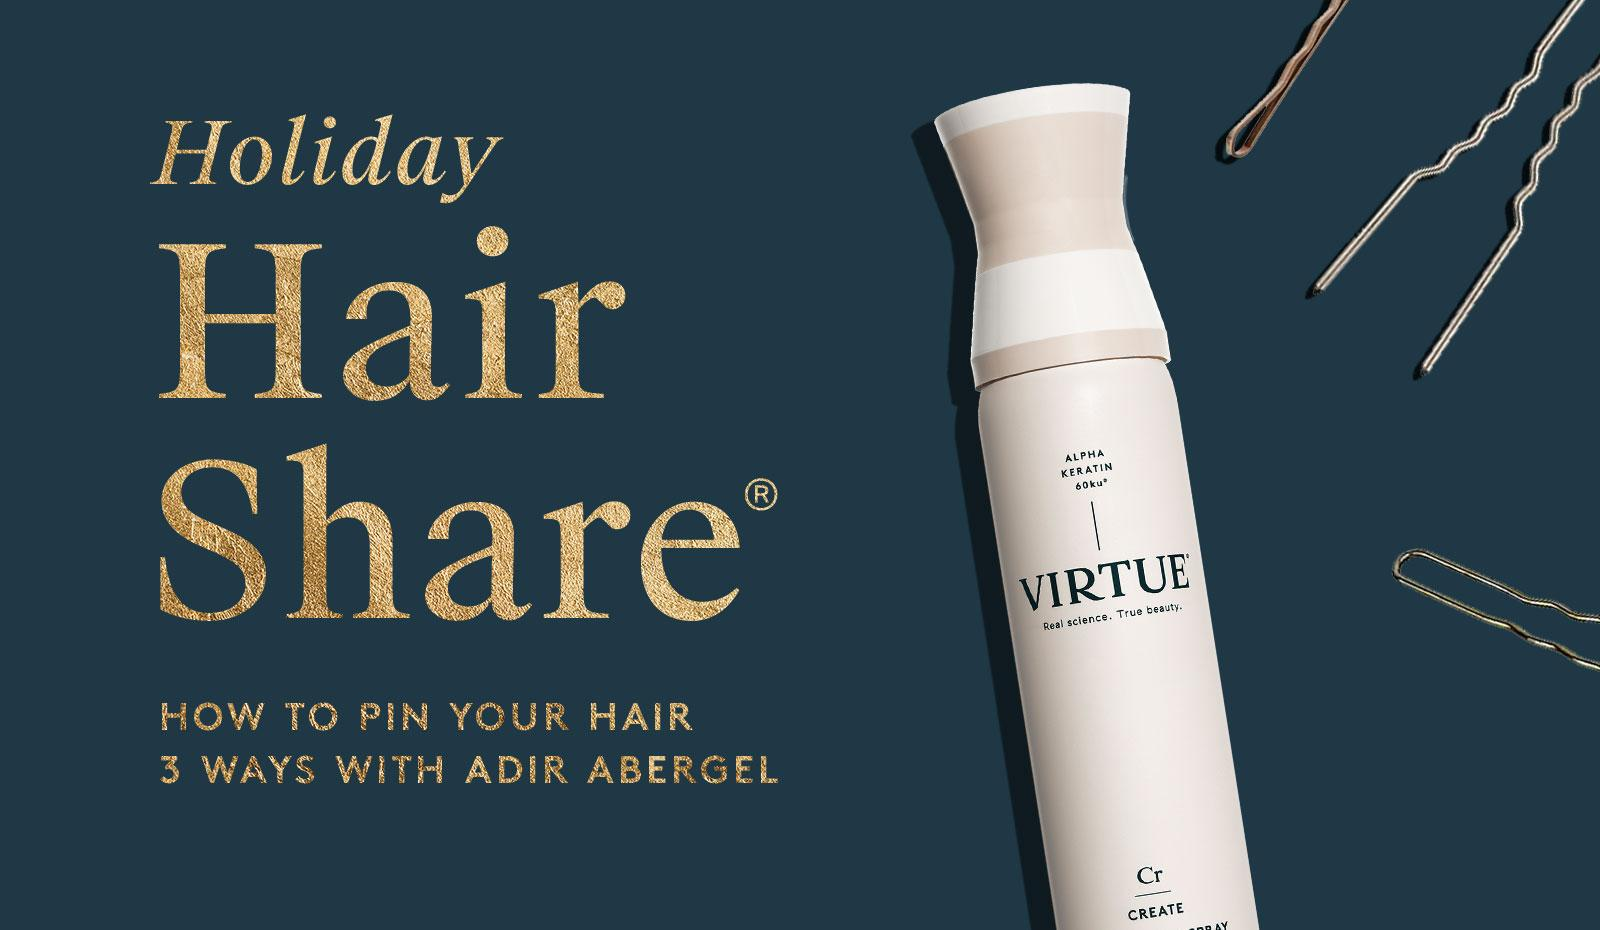 The Holiday Hair Share®: How To Pin Your Hair Three Ways with Adir Abergel